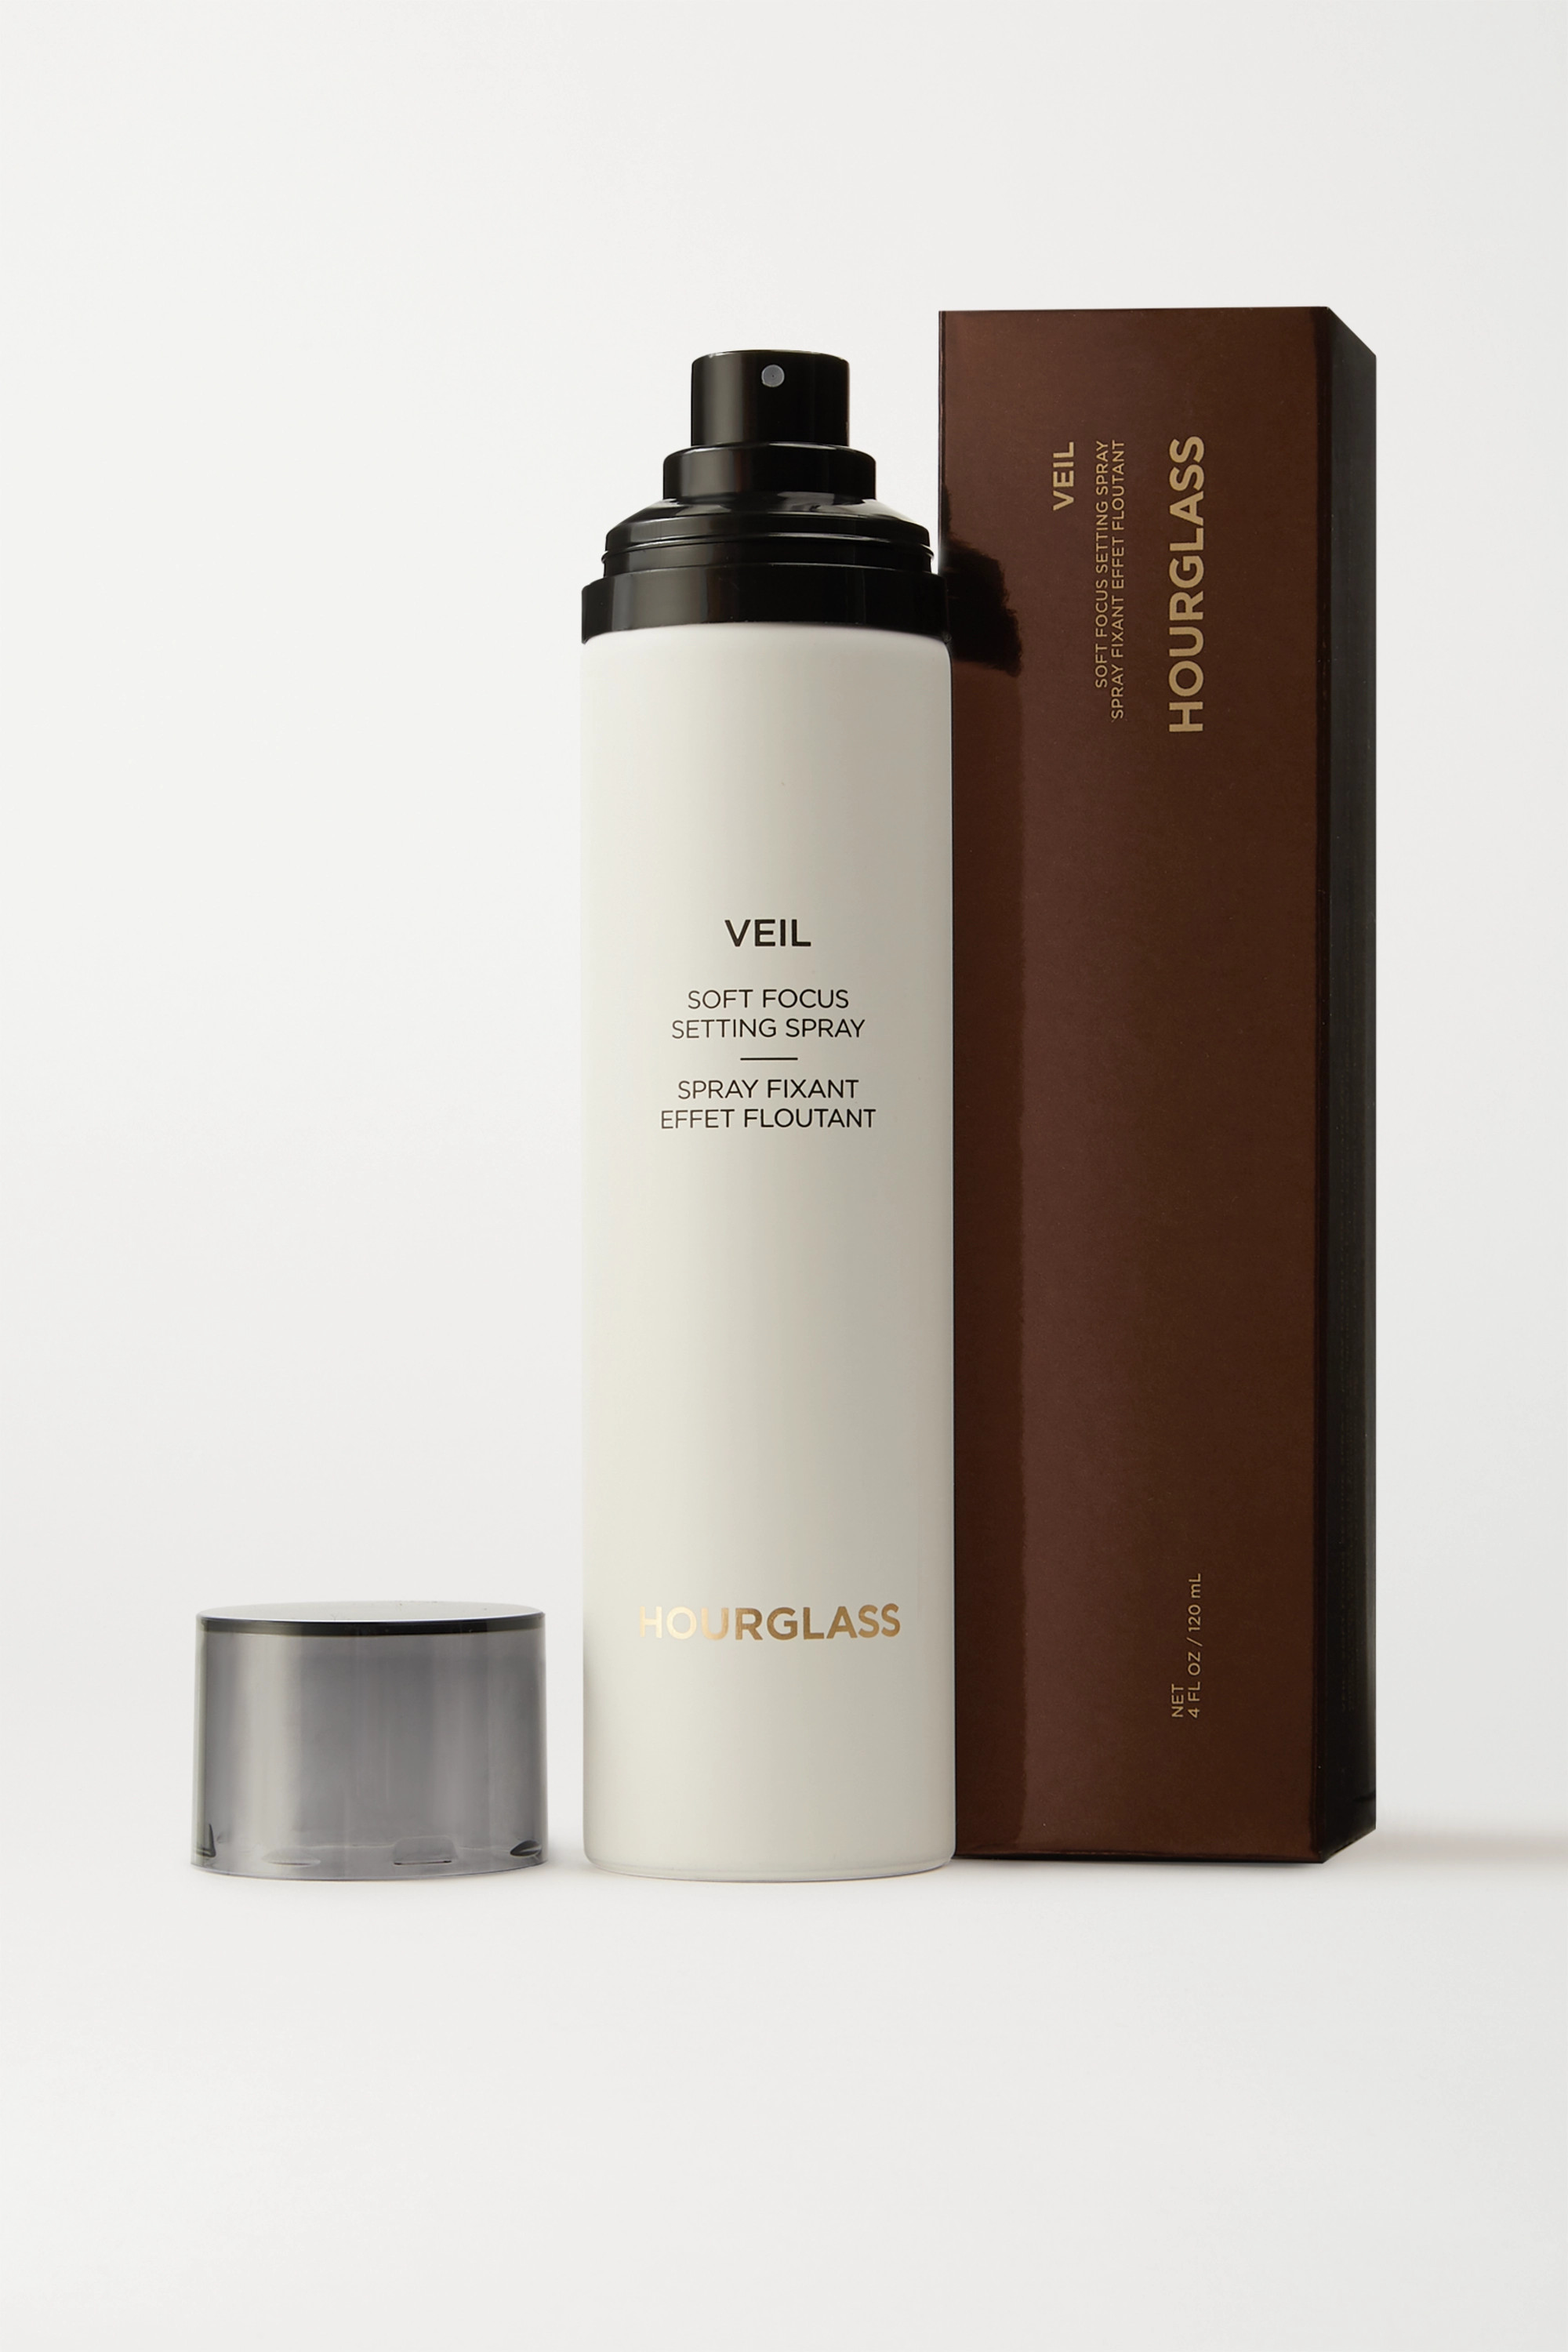 HOURGLASS Veil Soft Focus Setting Spray, 120ml